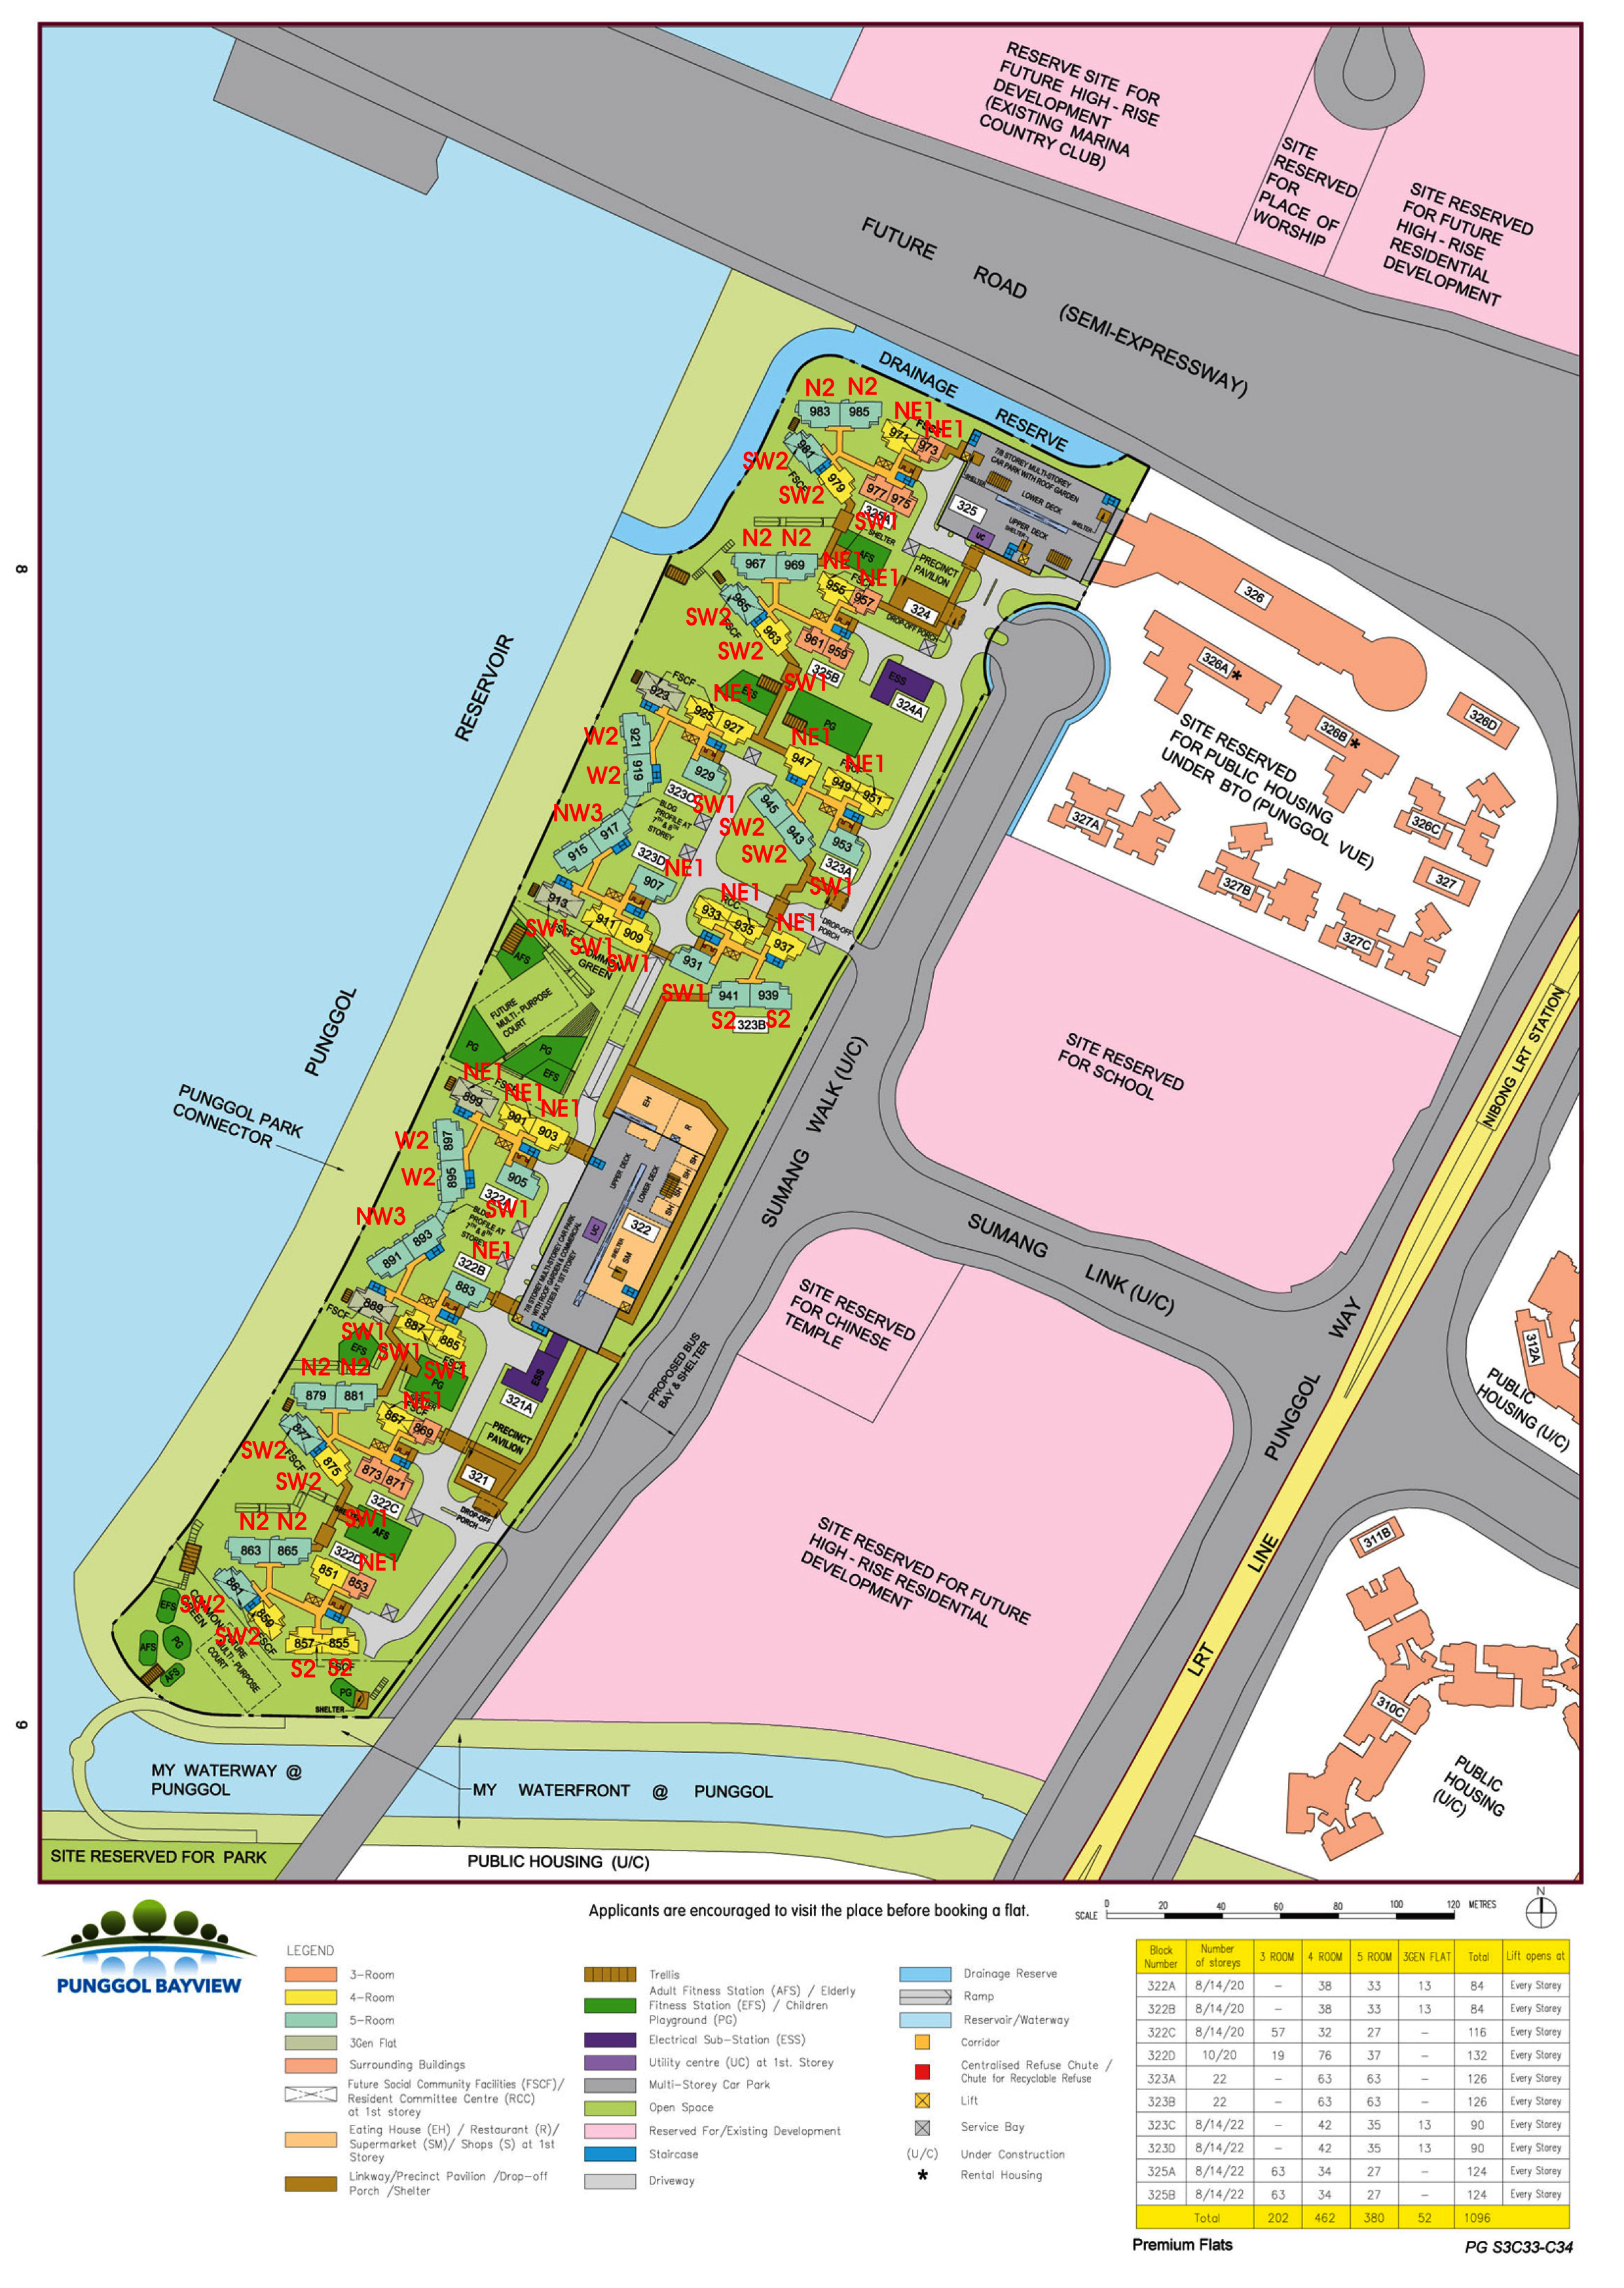 Hdb Punggol Bayview One Of The Better Sites Singapore